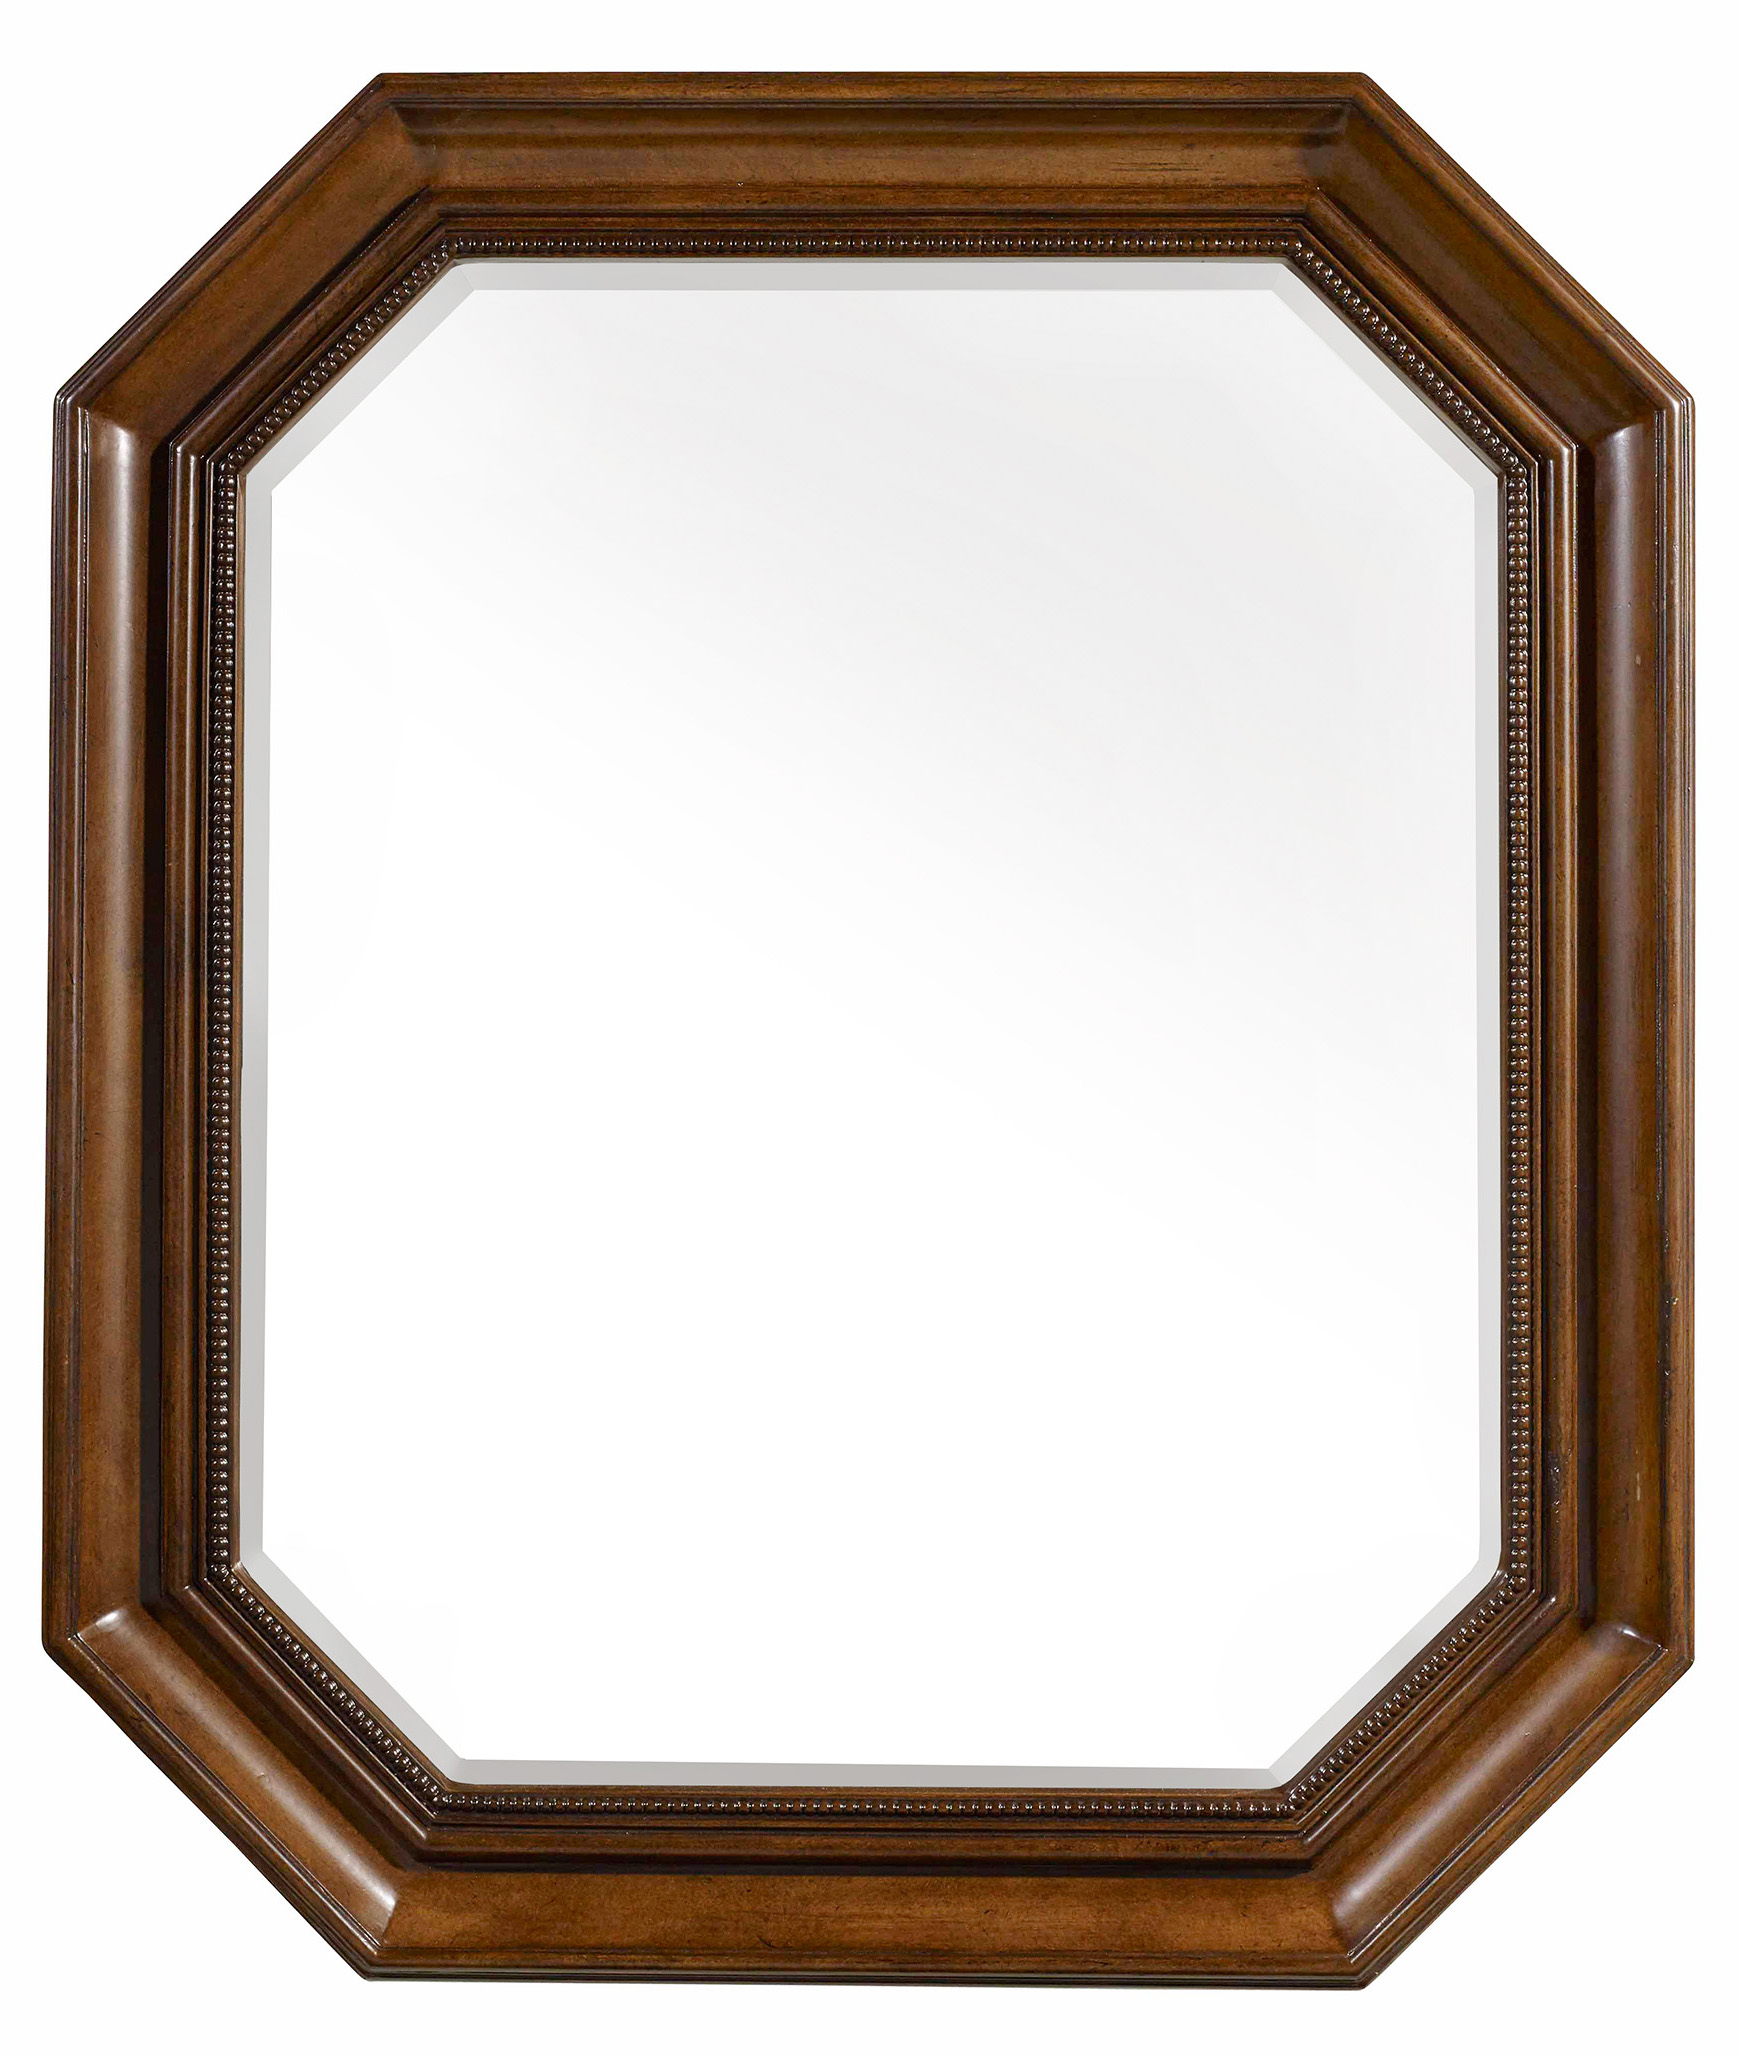 Archivist Portrait Mirror by Hooker Furniture at Alison Craig Home Furnishings